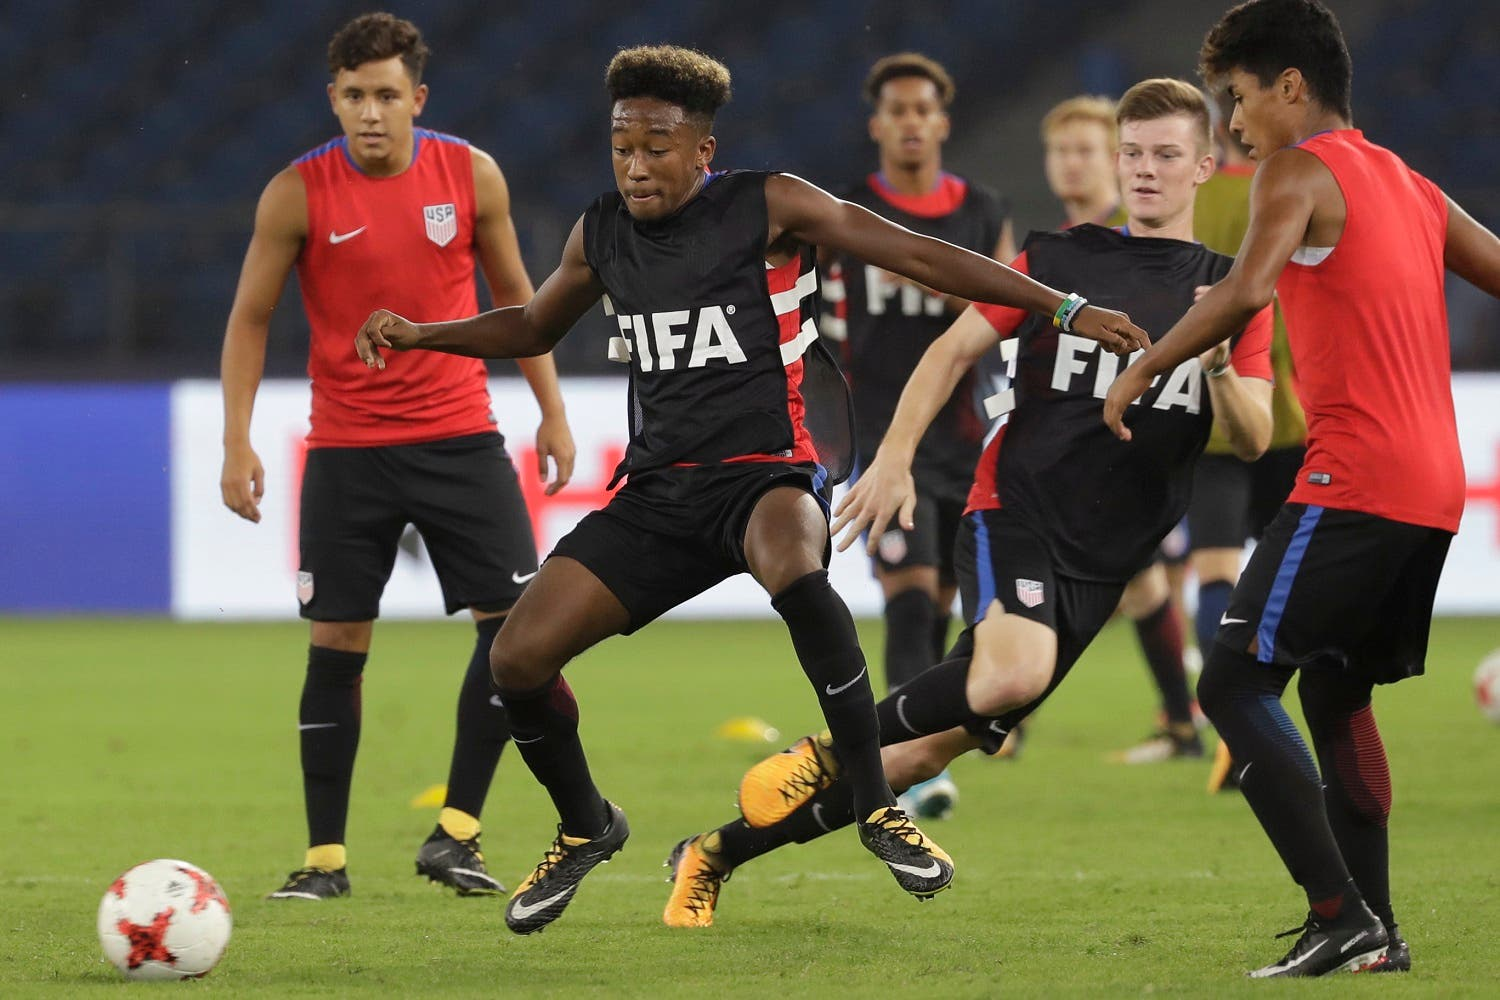 US soccer players train ahead of their FIFA U-17 World Cup match against India in New Delhi, on Thursday, Oct. 5, 2017. (AP)